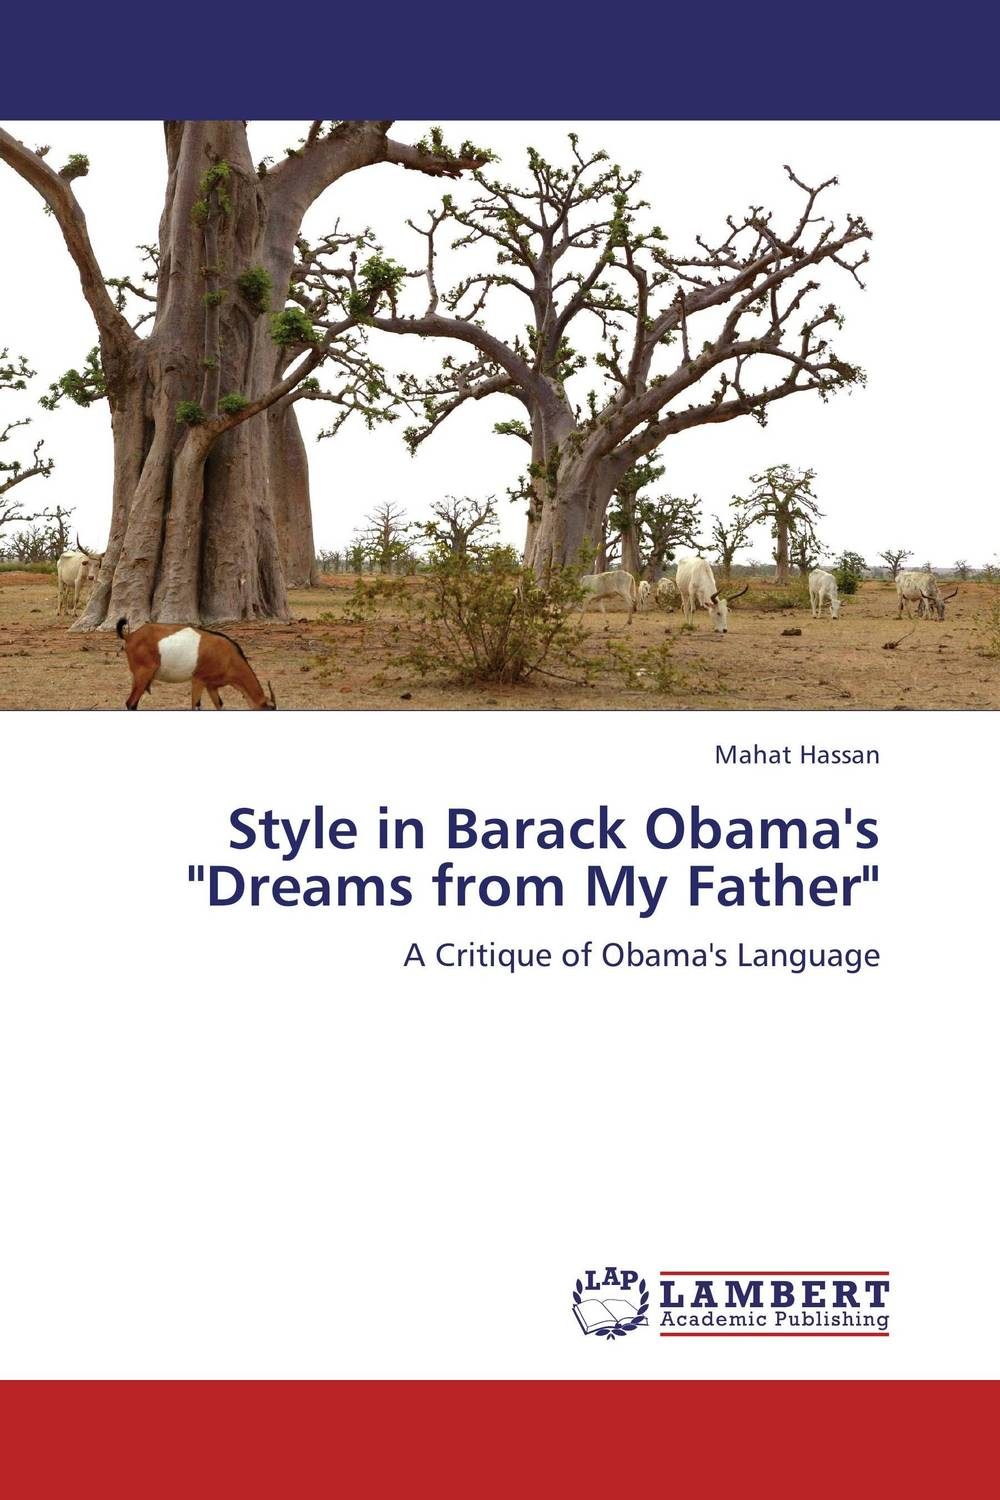 Style in Barack Obama's Dreams from My Father rollason j barack obama the story of one man s journey to the white house level 2 сd